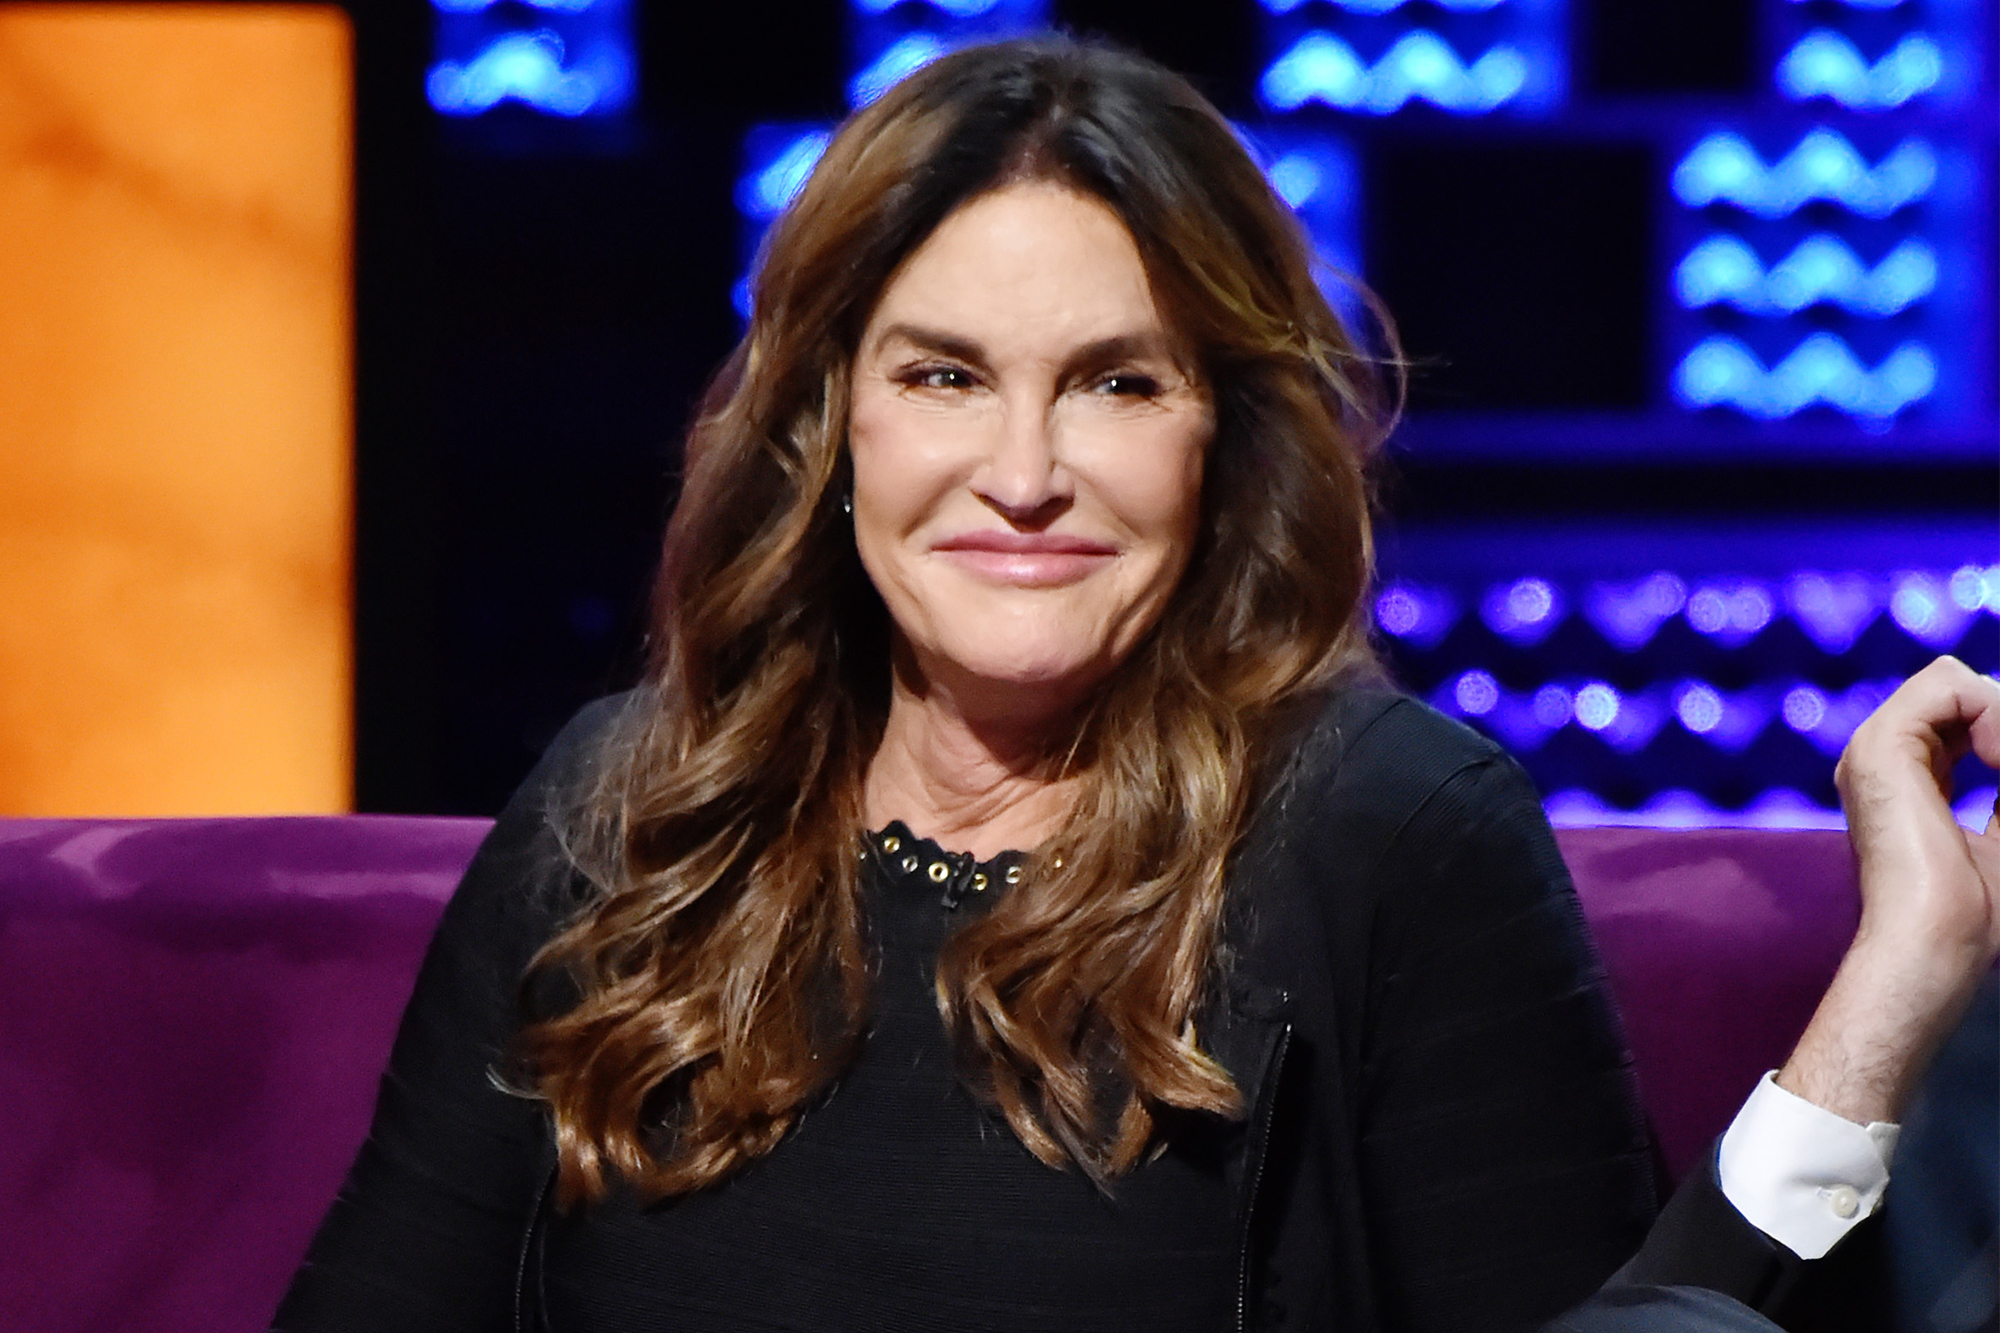 caitlyn-jenner-to-reportedly-appear-on-the-sex-and-the-city-reboot